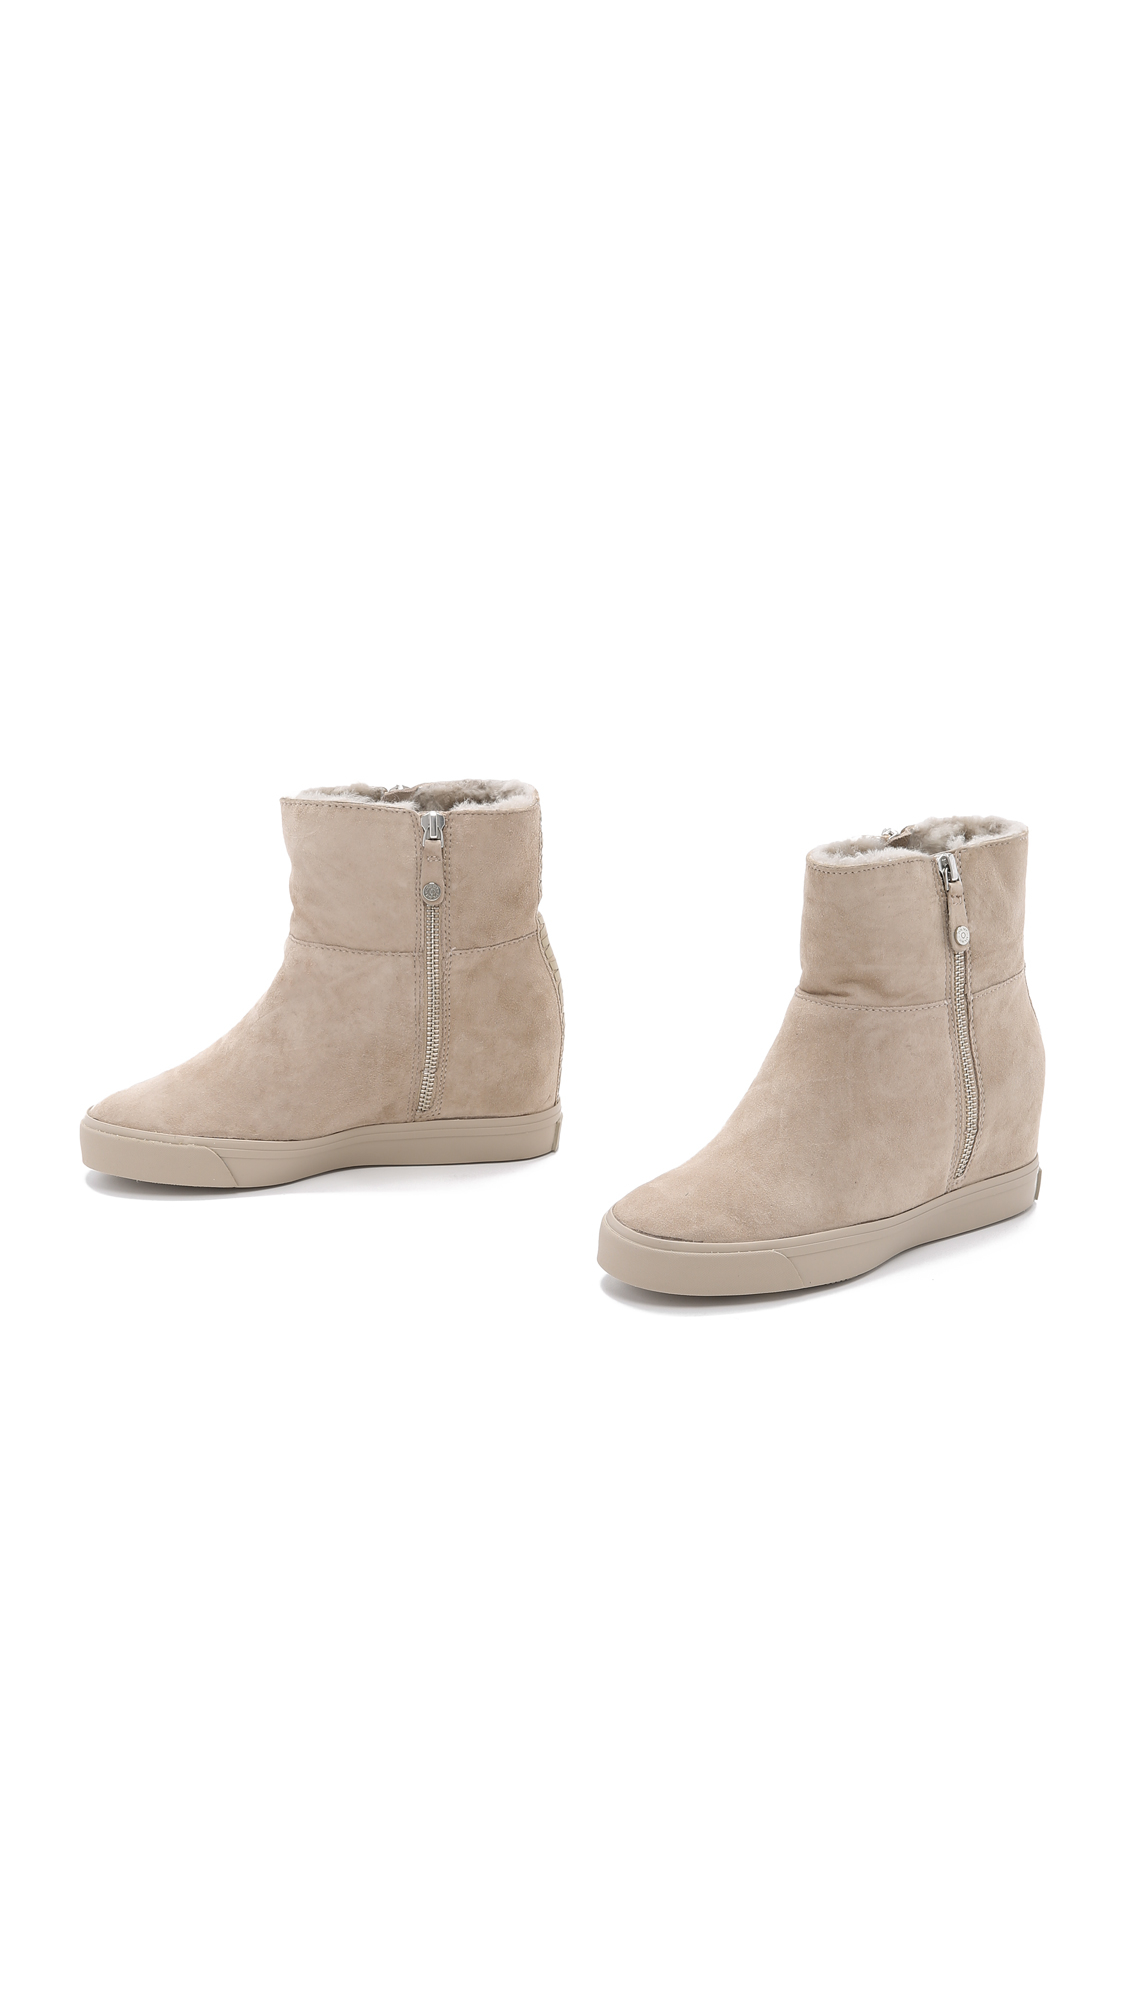 09942a9a431 DKNY Clarissa Wedge Booties - Light Taupe in Brown - Lyst